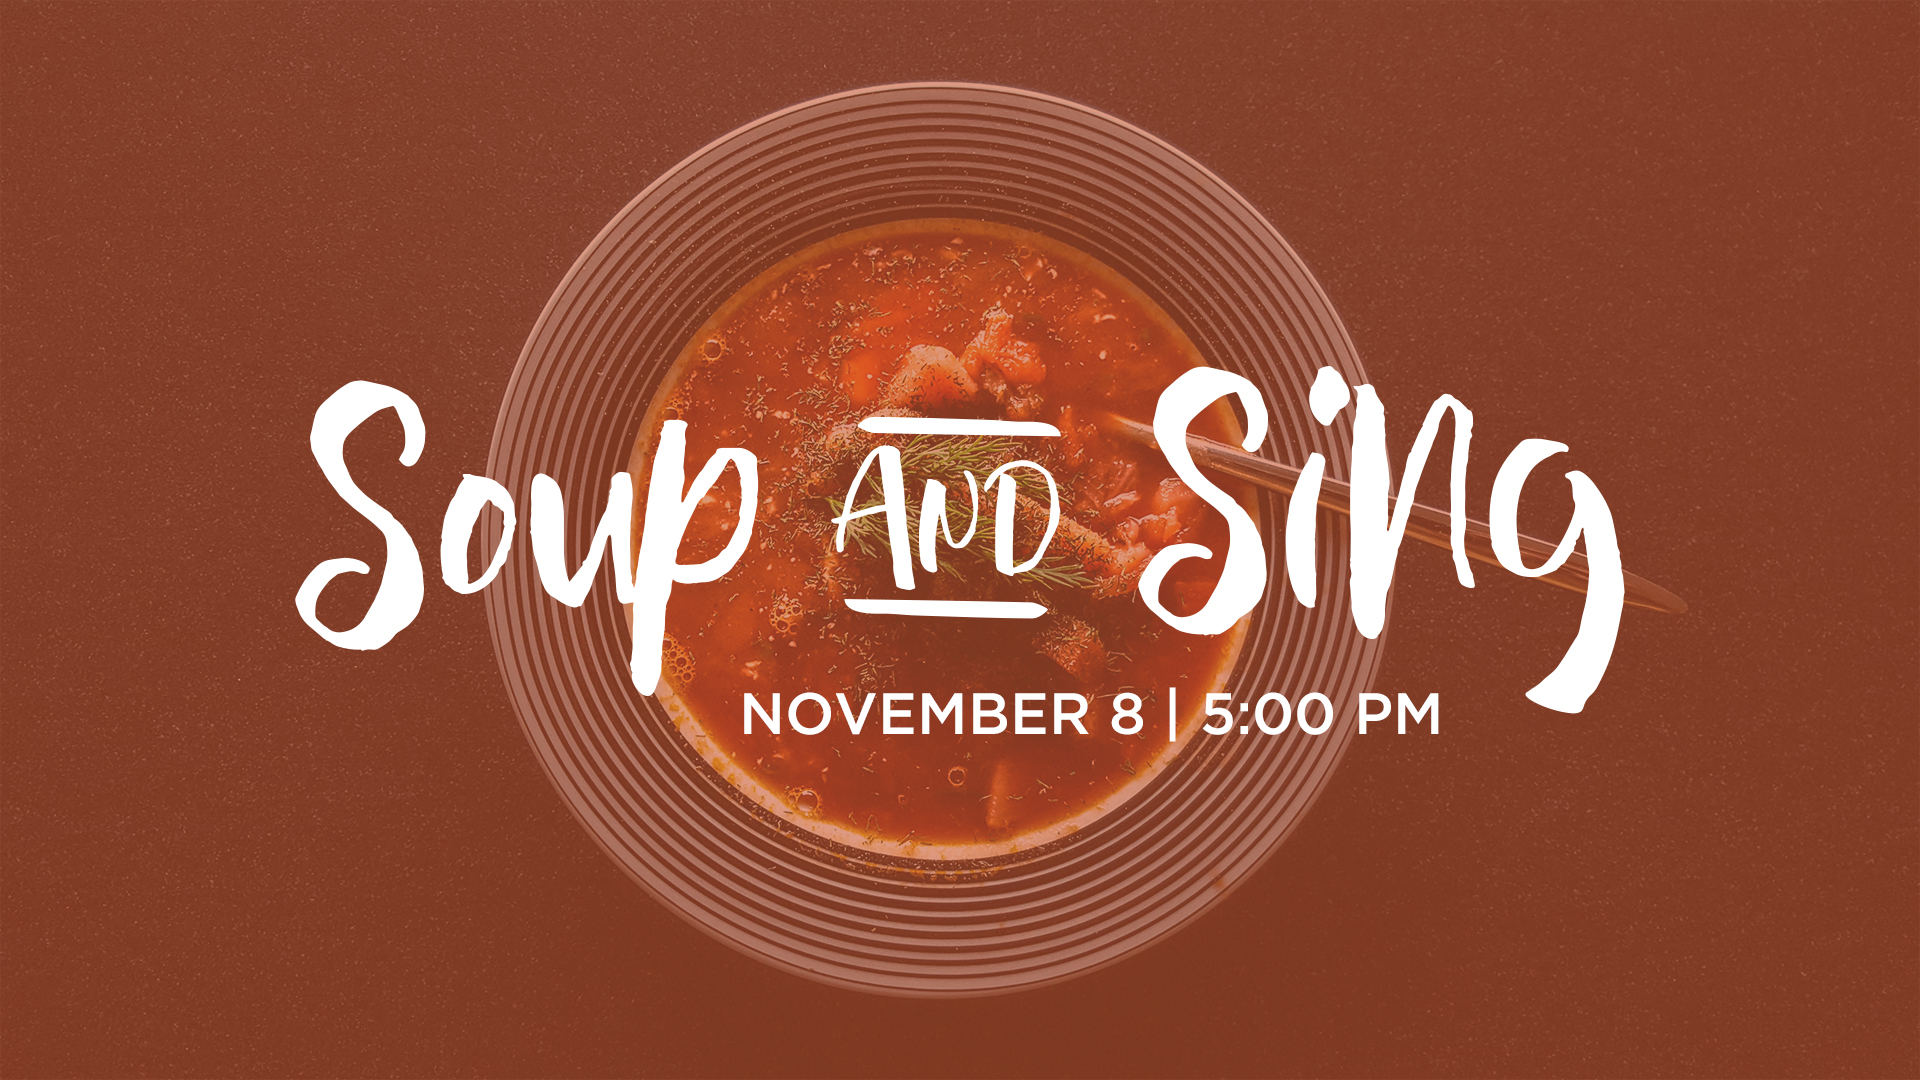 Soup and Sing